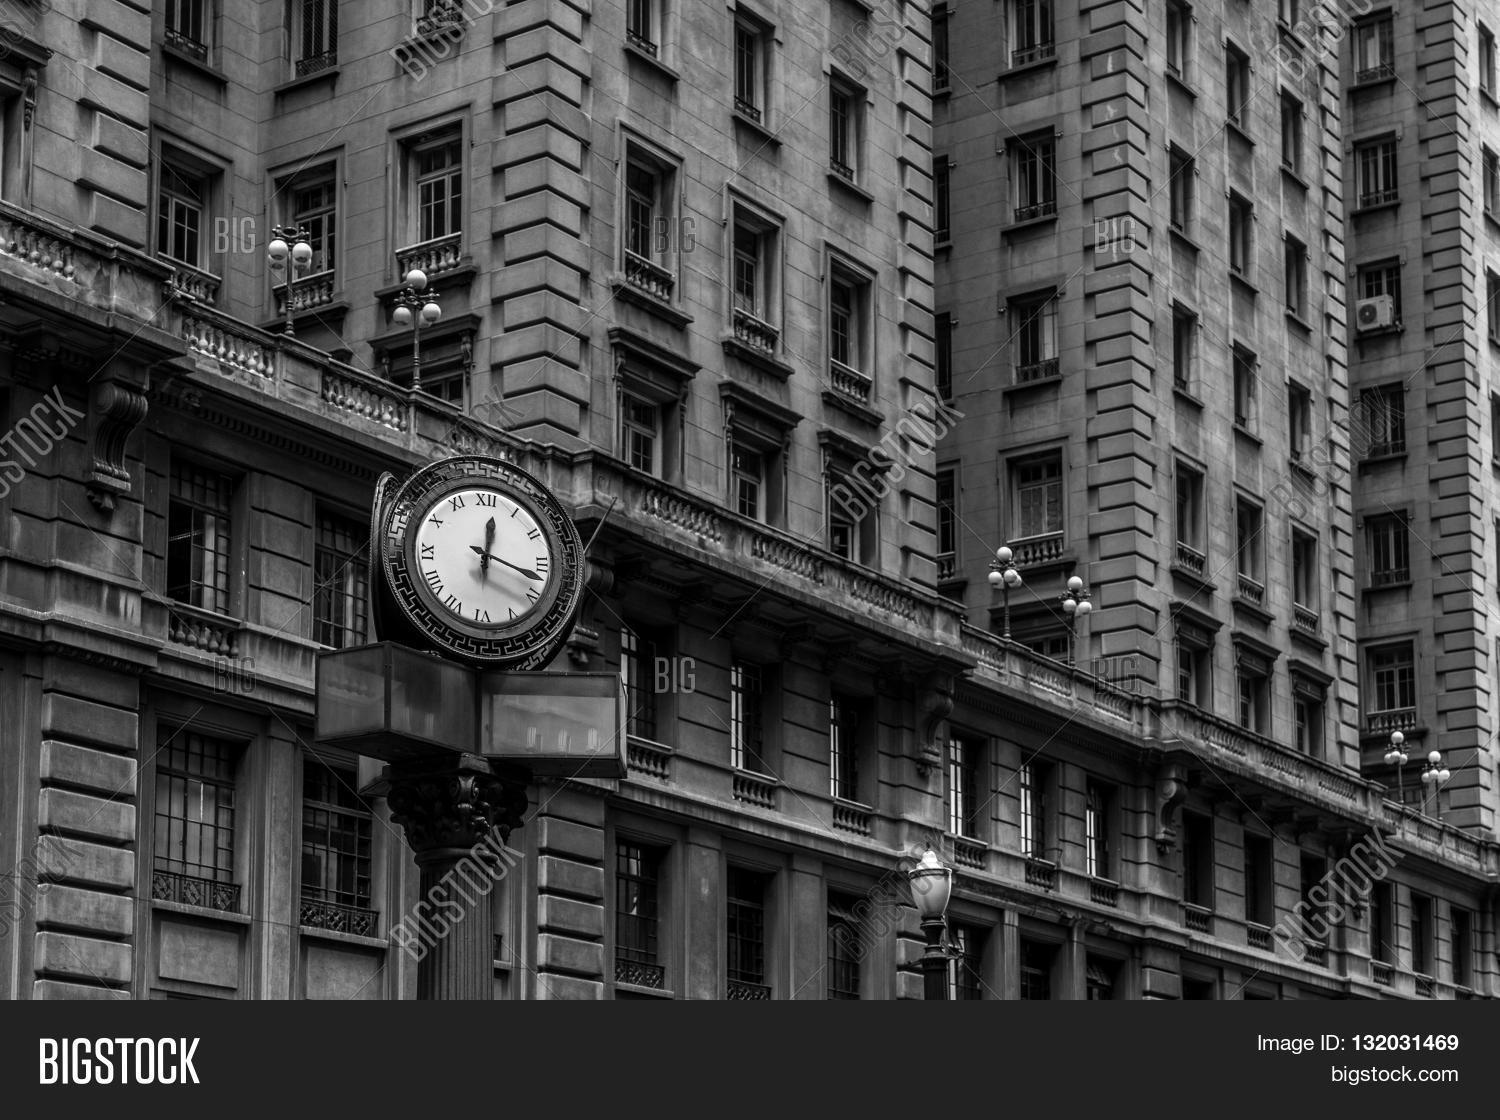 Black and white iconic old style street clock in front of buildings with windows with old